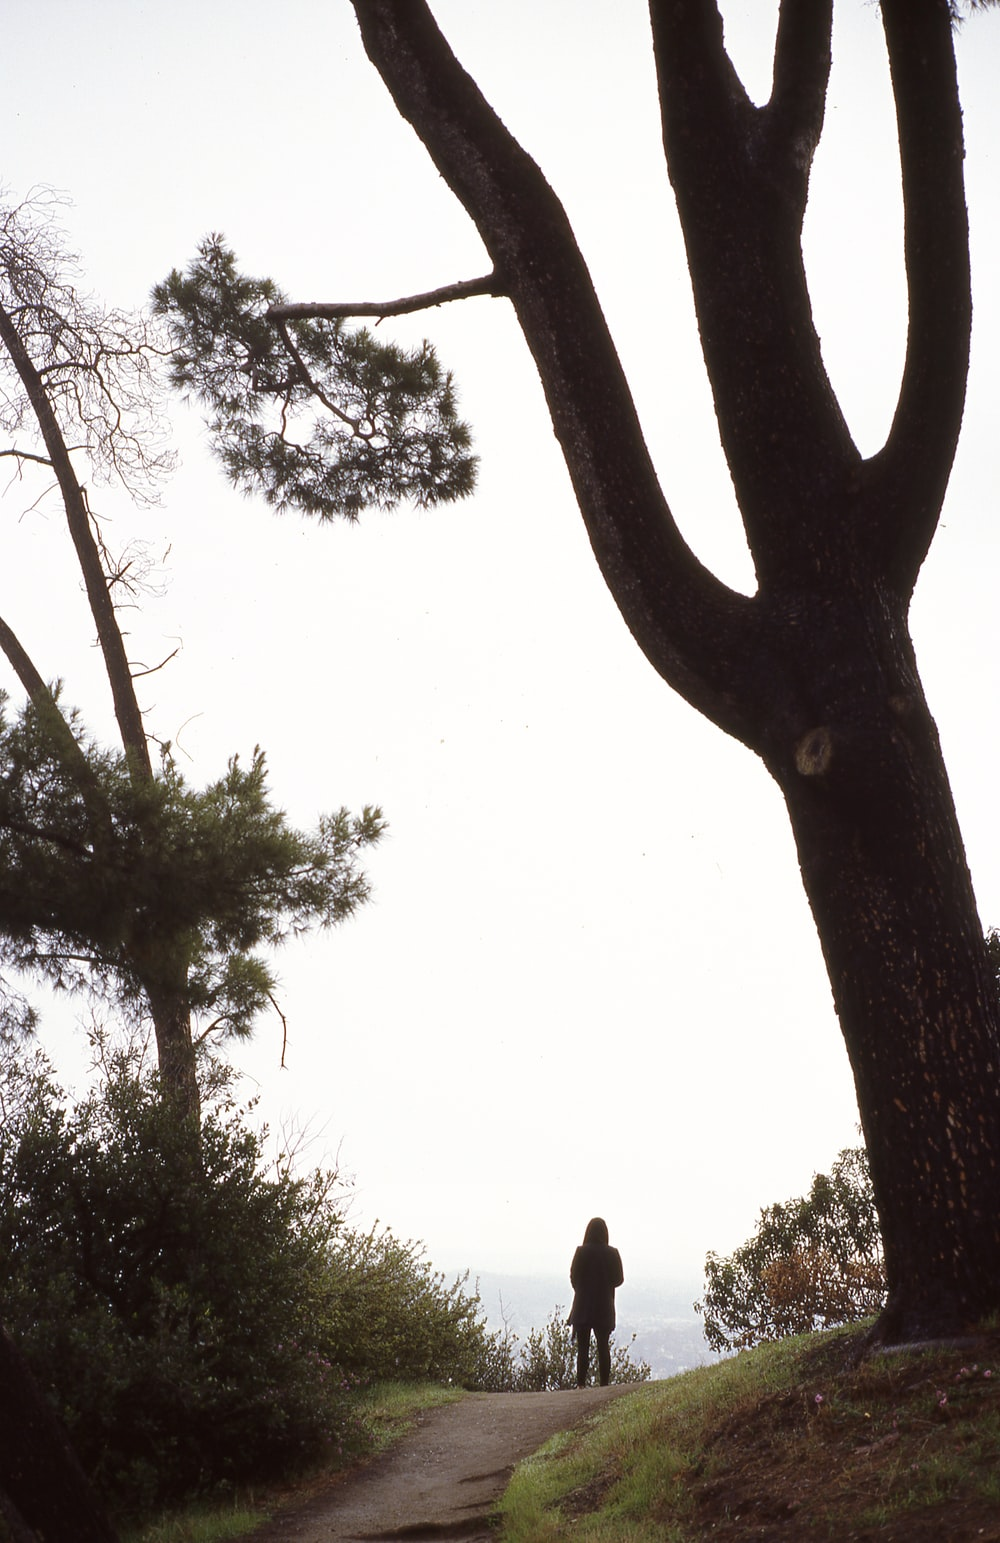 silhouette of person standing on road beside tree during daytime